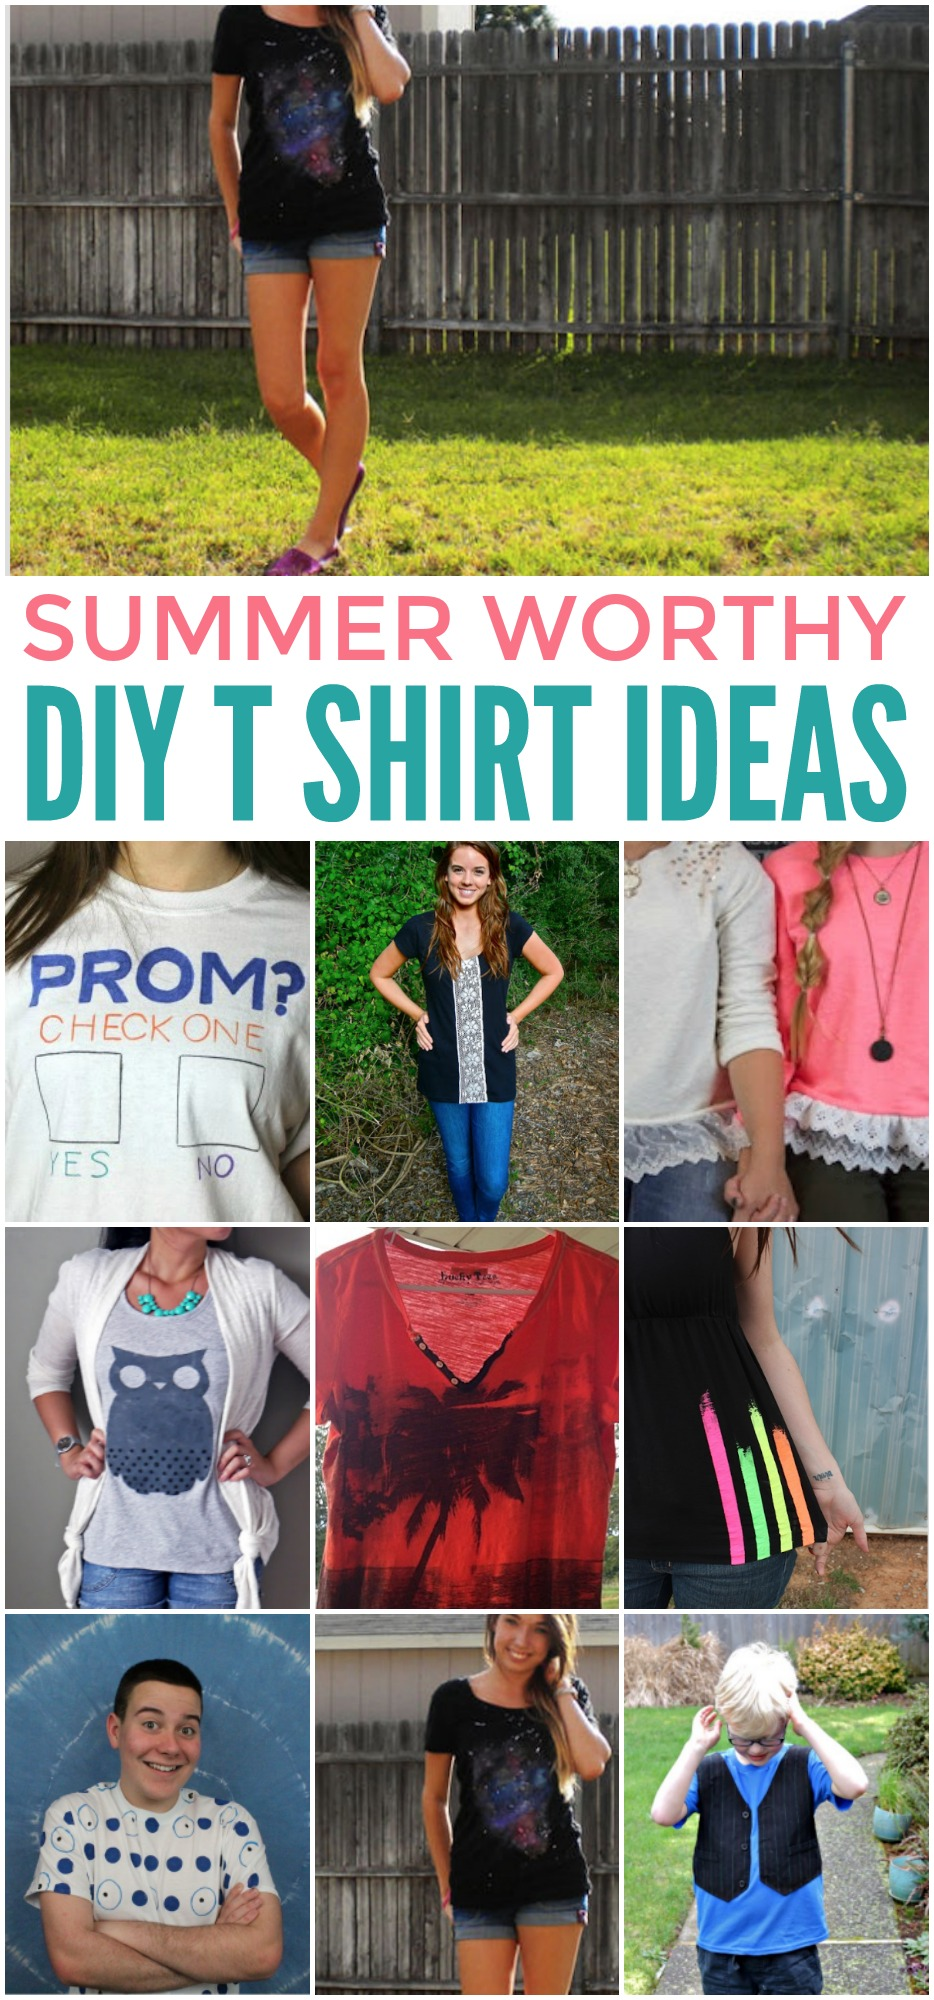 You're sure to love all of these DIY shirt ideas, and it would be a great idea to host a party this summer and have everyone bring over shirts to create.